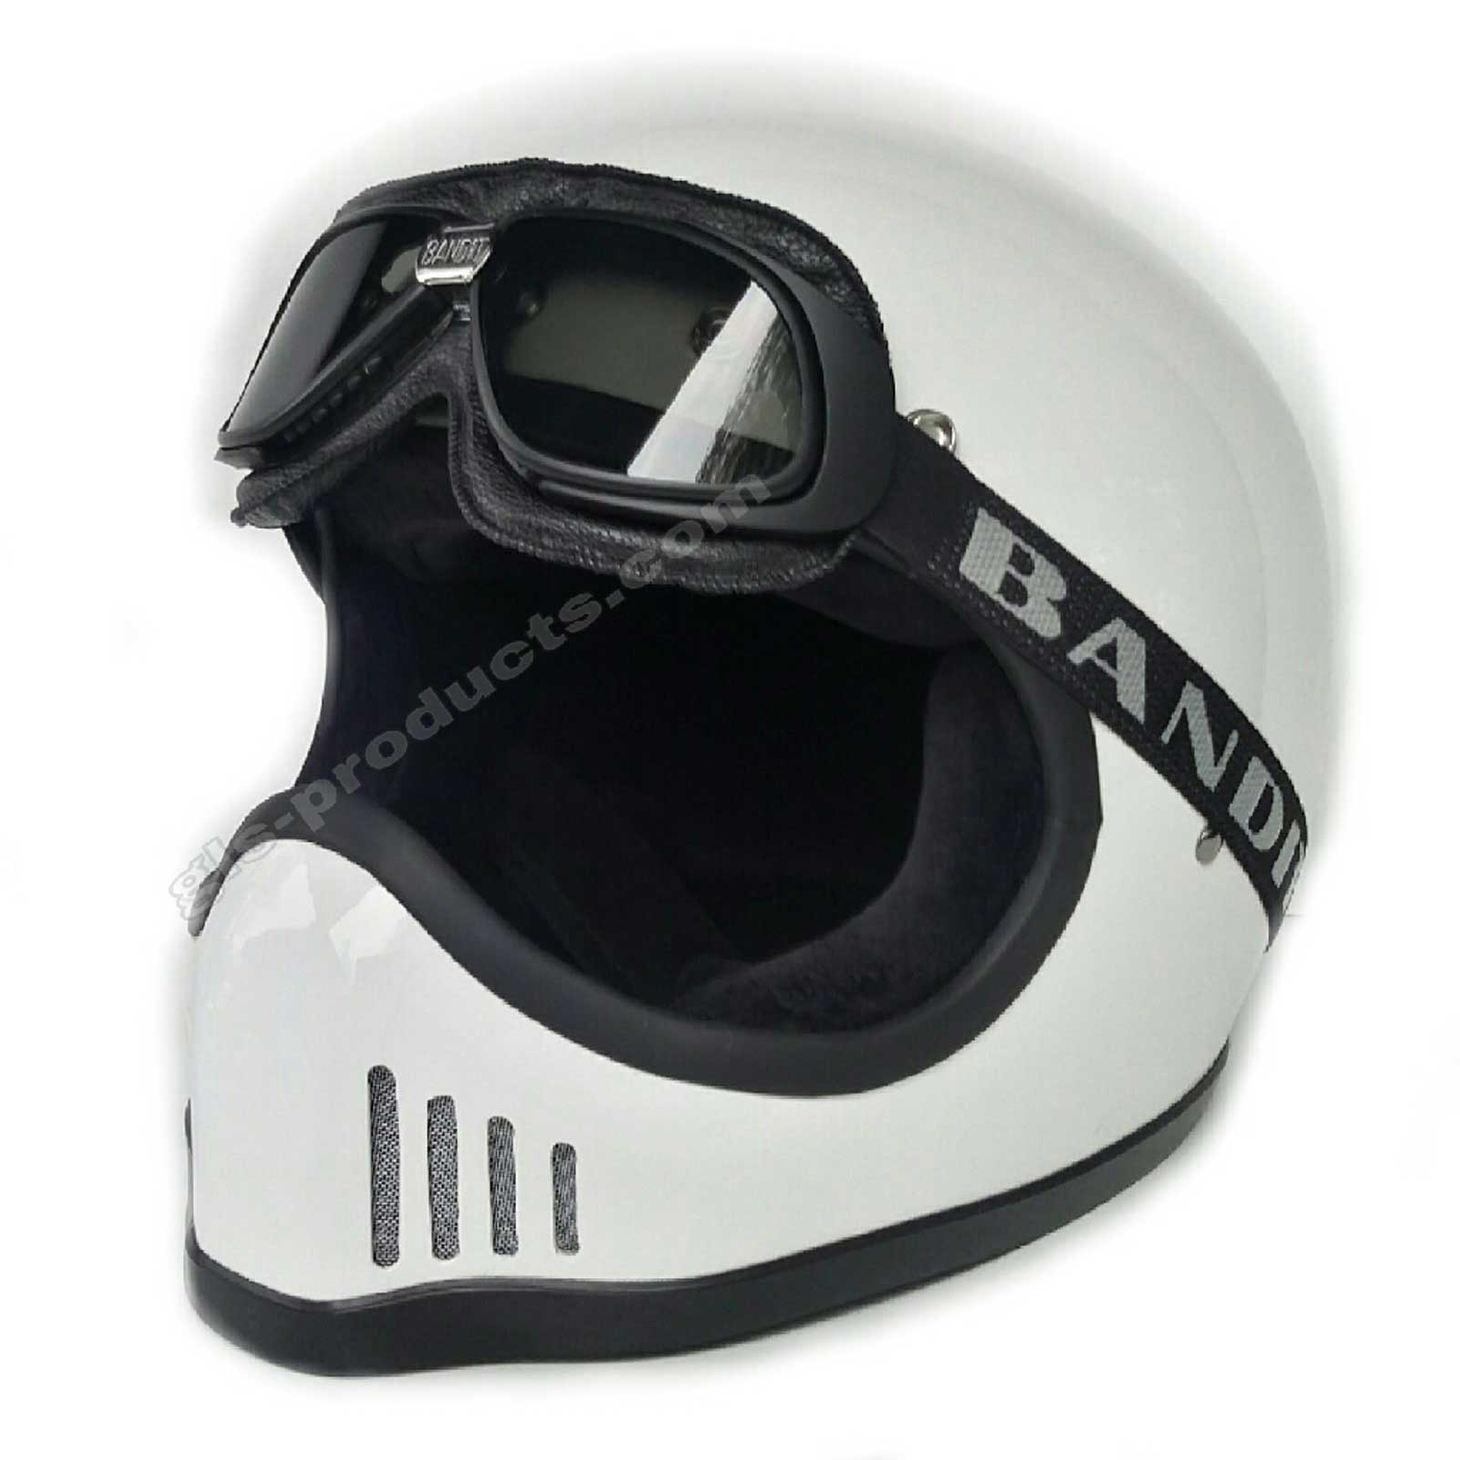 Bandit Motorcycle Glasses Goggles black – Picture 8